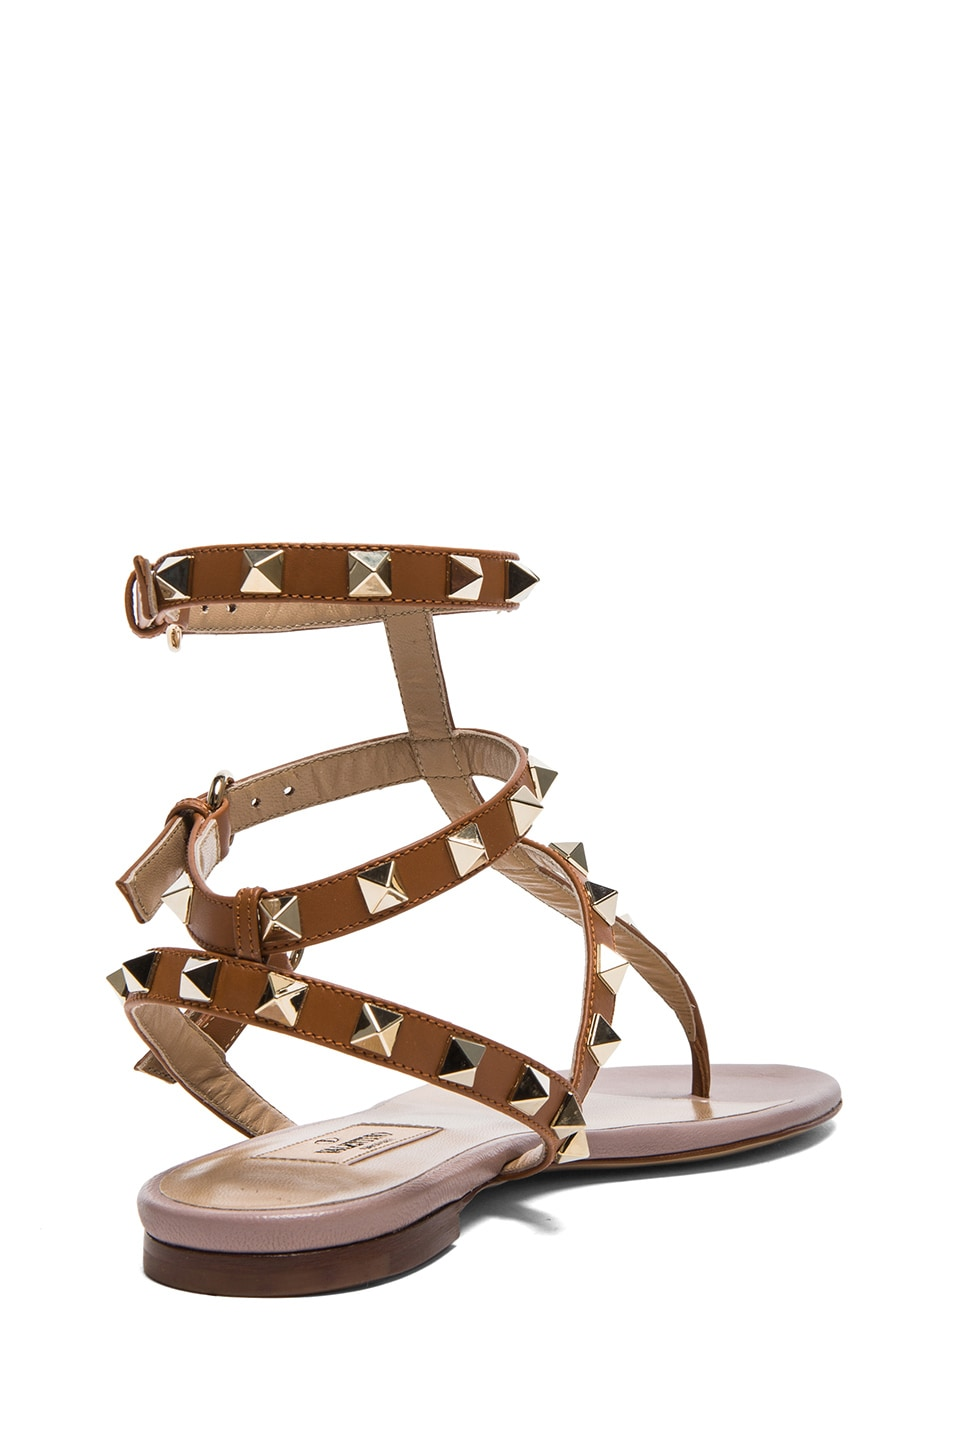 Image 3 of Valentino Rockstud Gladiator Leather Sandals T.05 in Light Cuir